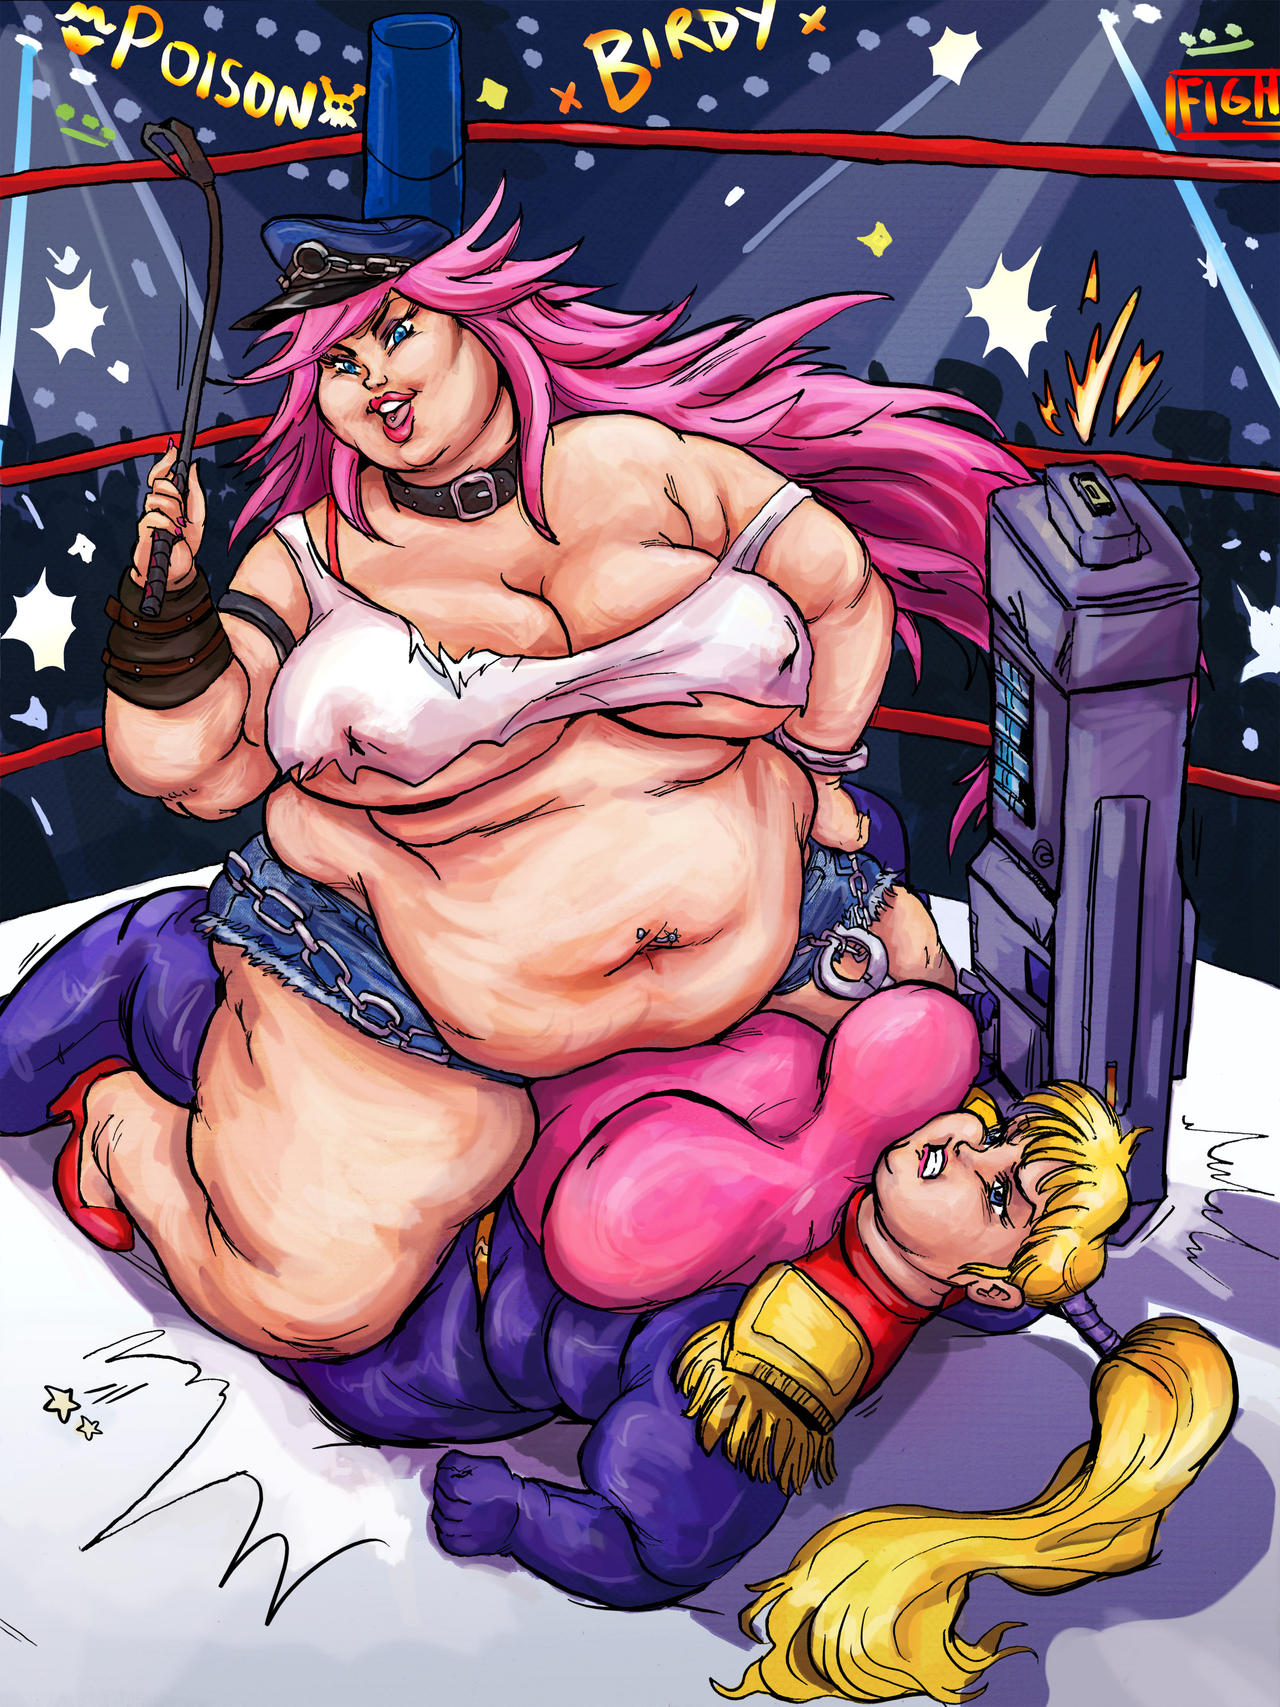 bbw_poison_vs_birdy_by_theamericandream-d83cpsa.jpg